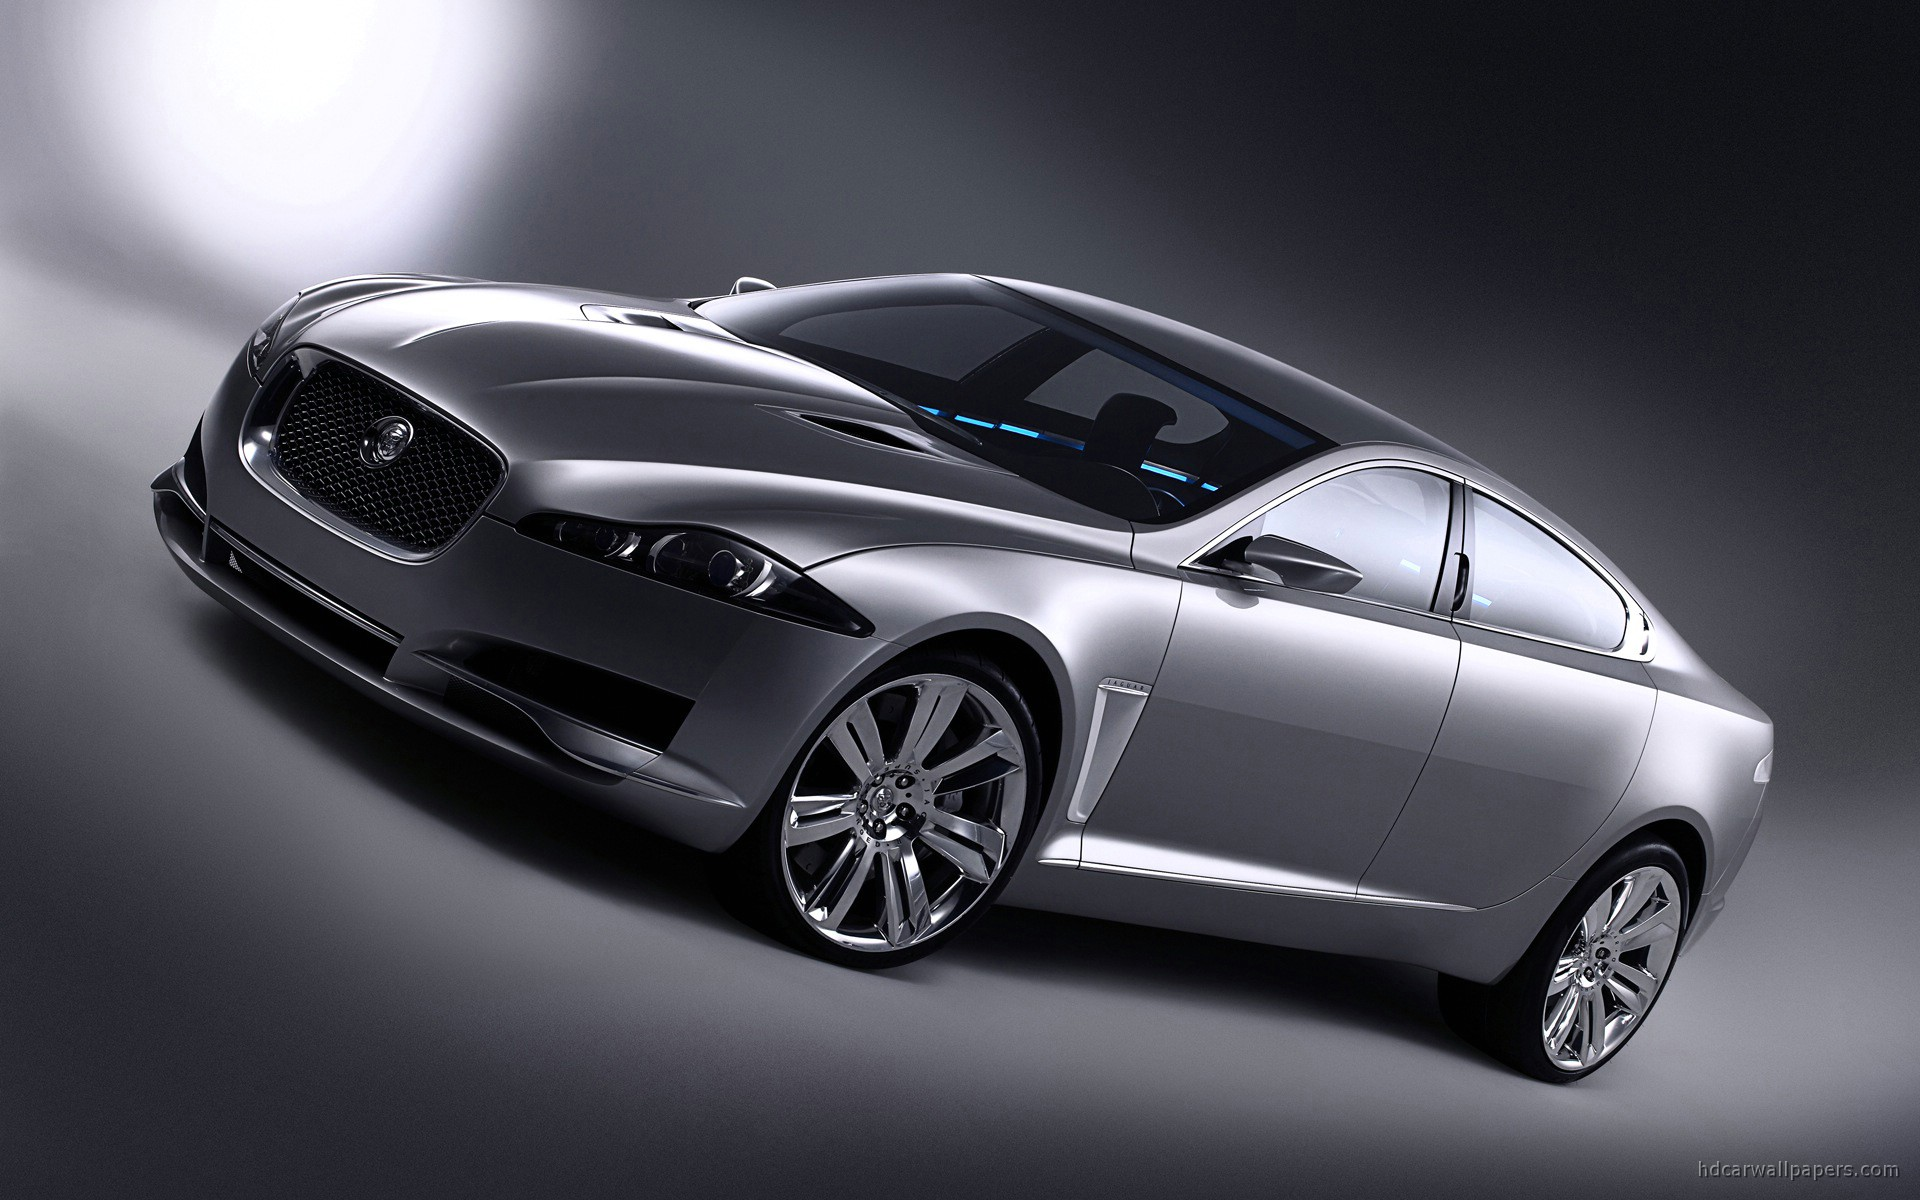 Tags Concept Jaguar Description Download C XF Wallpaper From The Above HD Widescreen